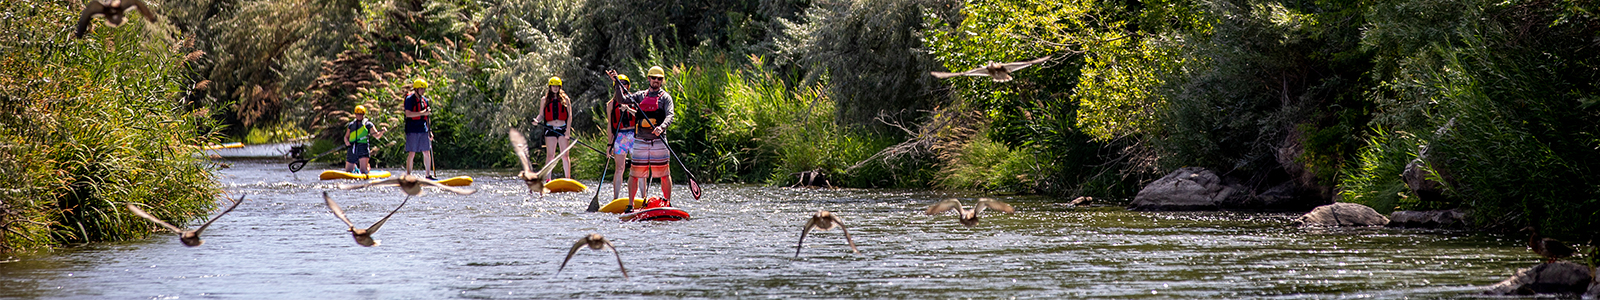 Students float down a river on a paddle board